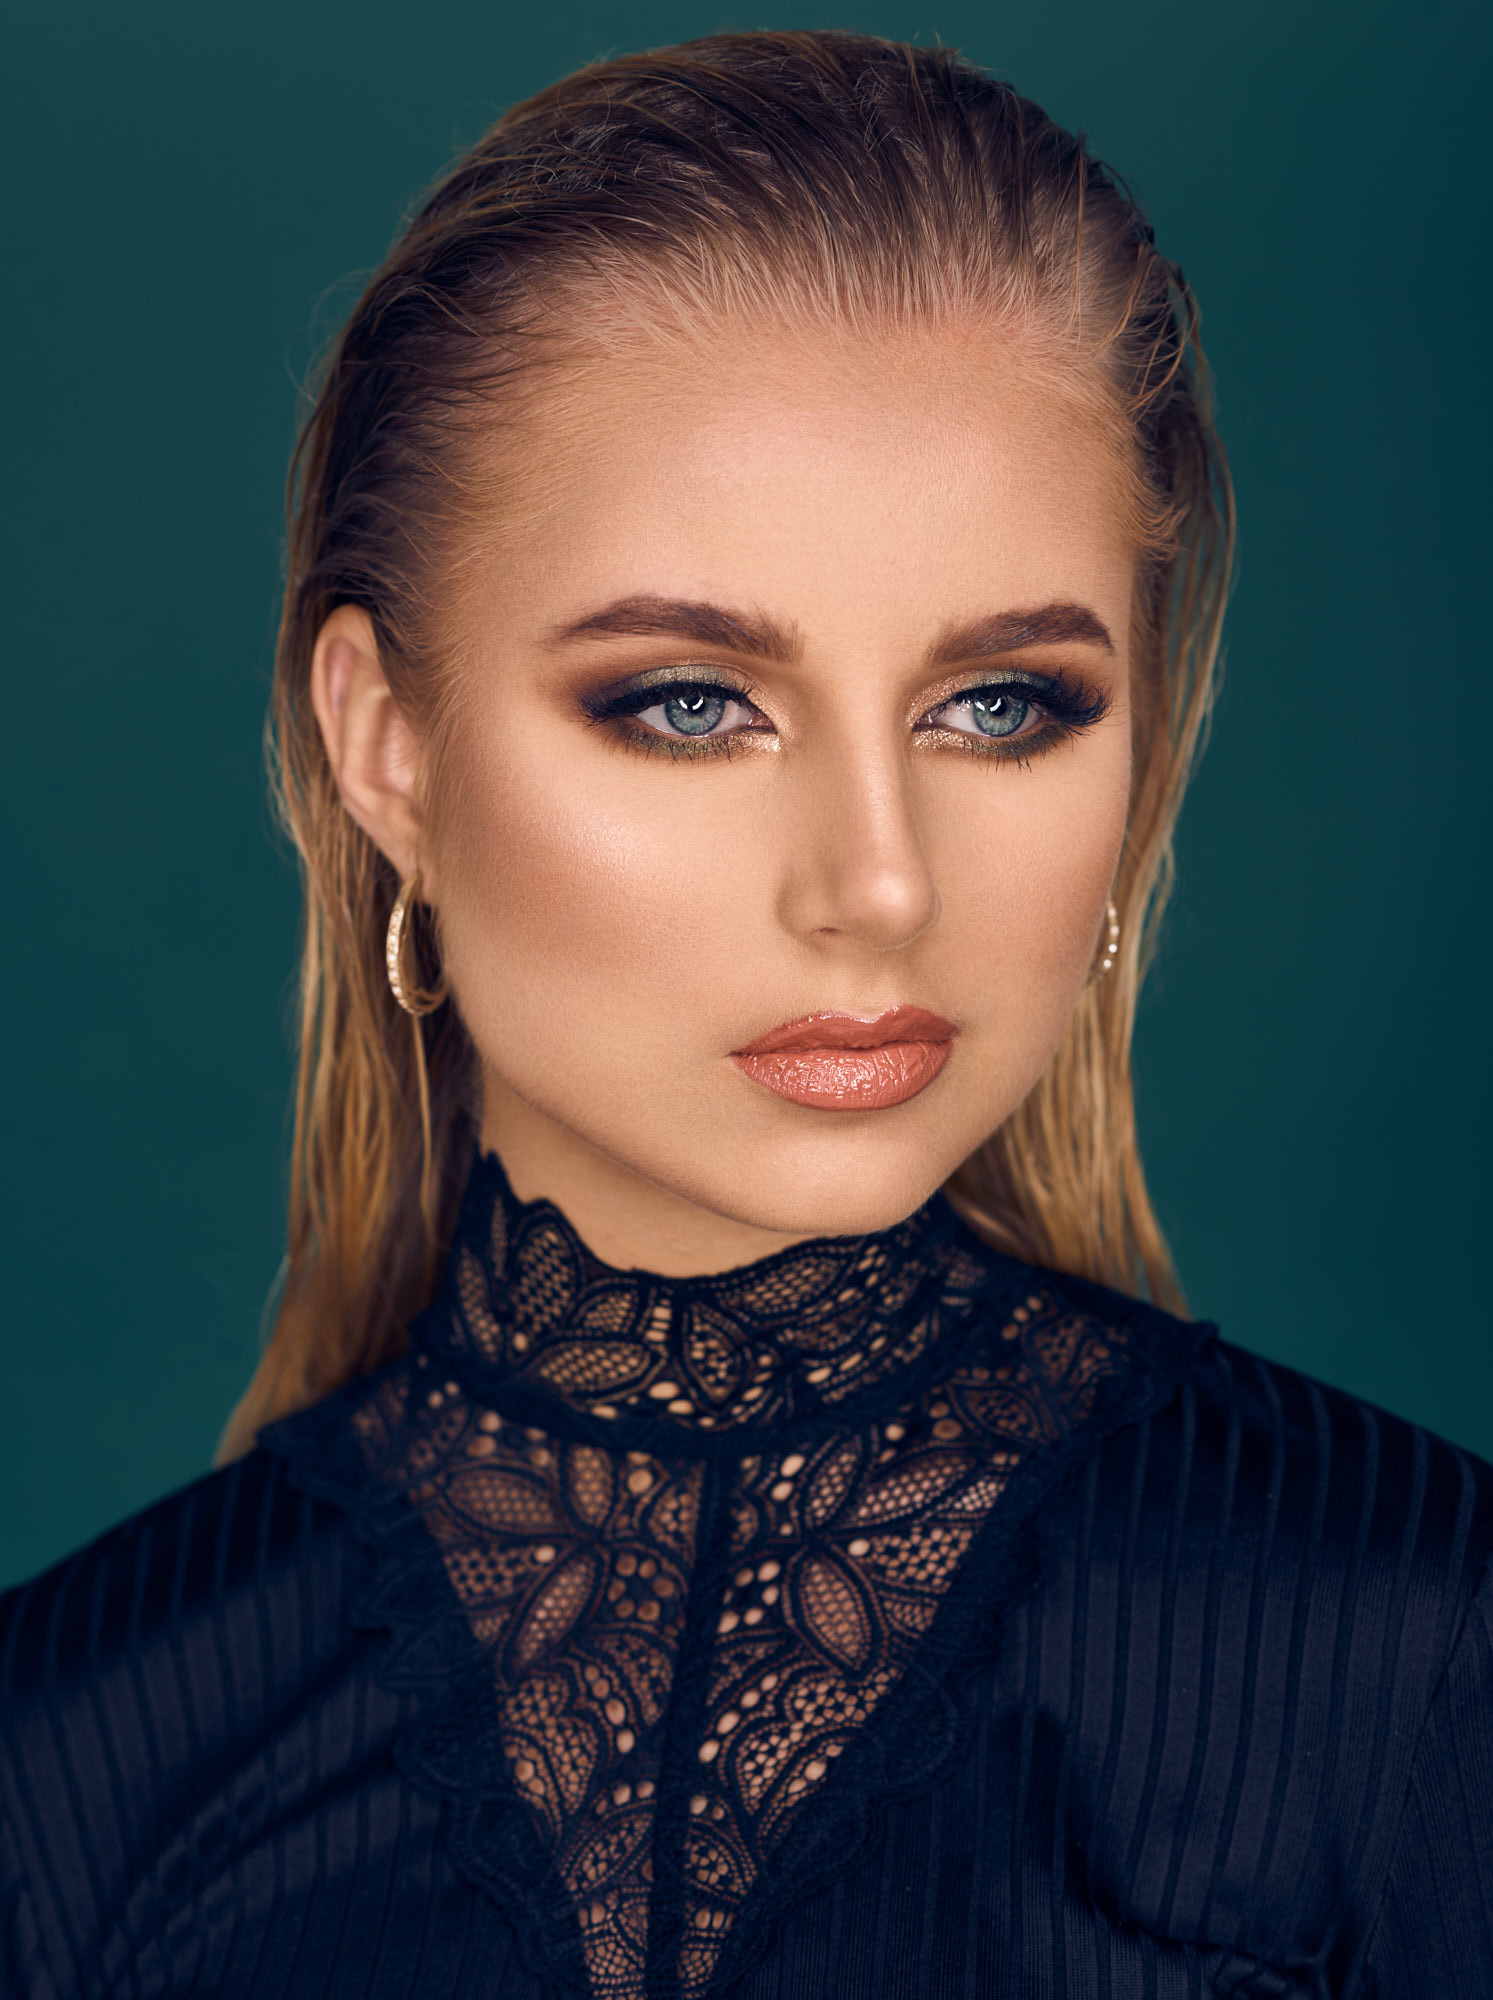 Model Maria Josefine Barup Make-up artist Zainab Al Saadi beauty grøn metallic